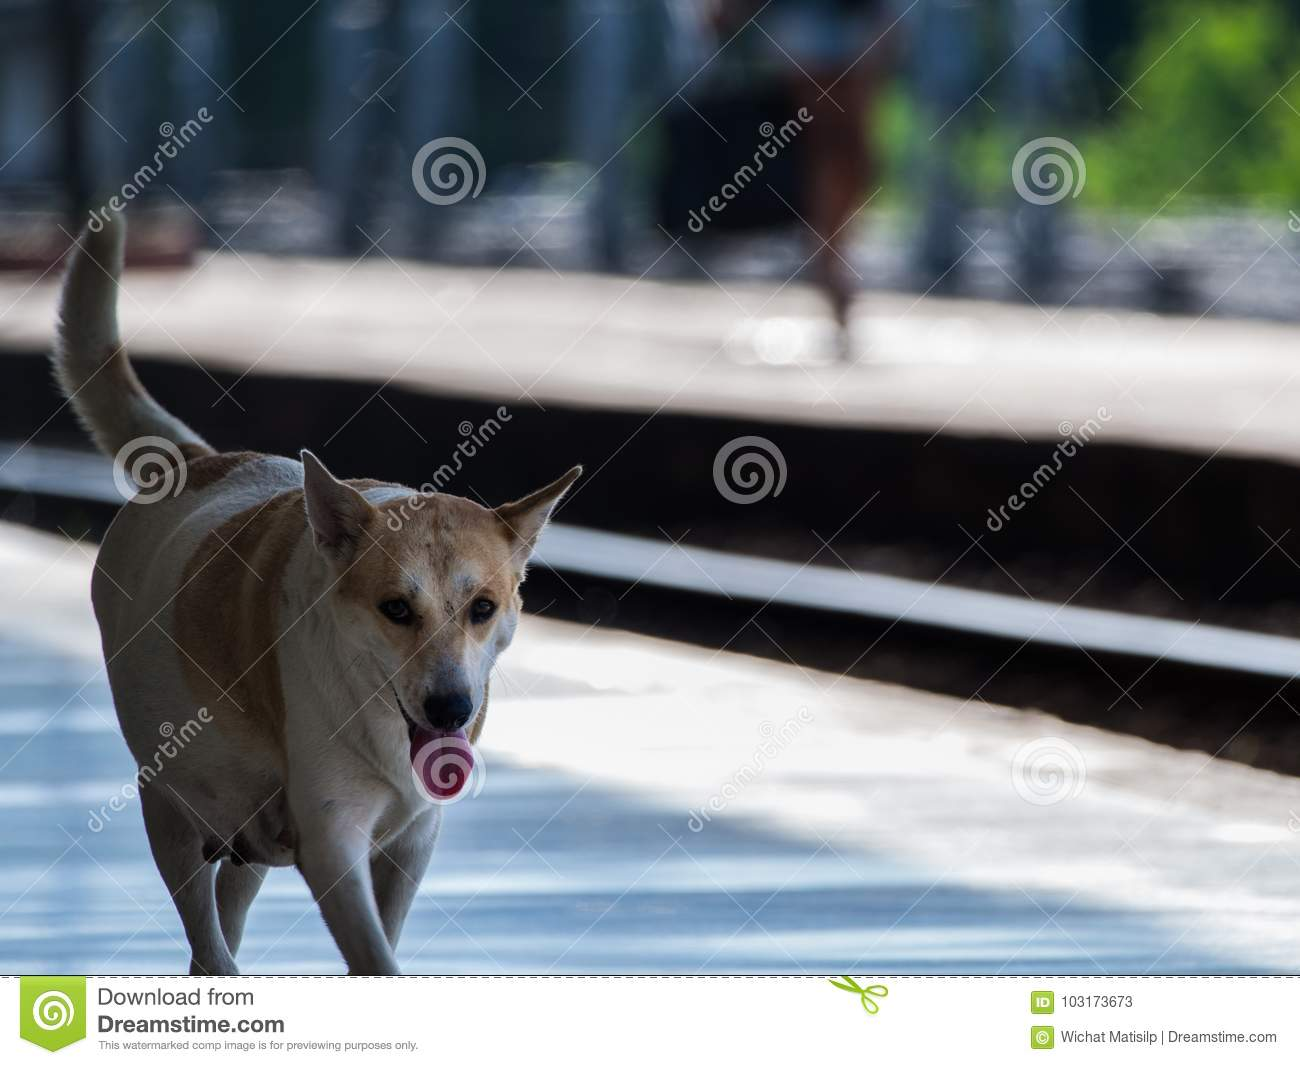 Dog Walked In The Train Station Stock Image - Image of background